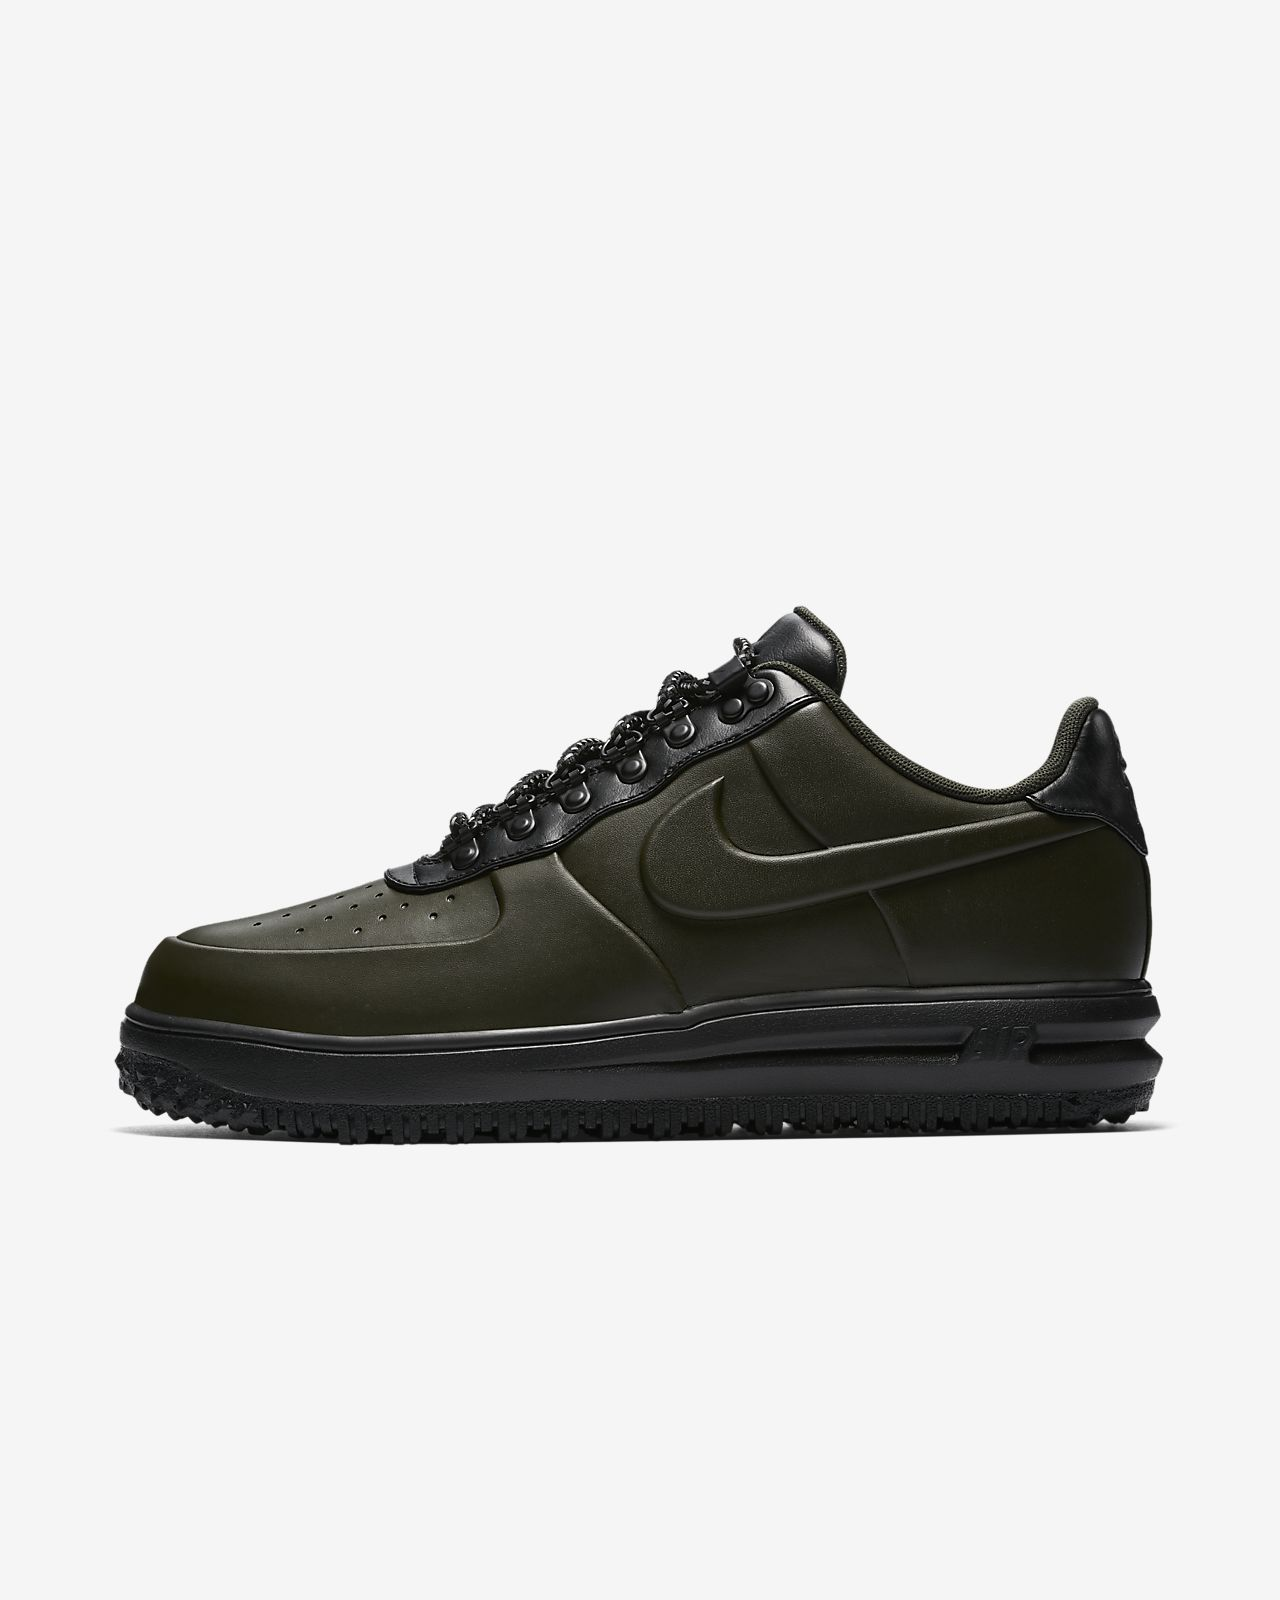 Scarpe uomo NIKE Lunar Force 1 Duckboot Low Brown in pelle nera AA1125300